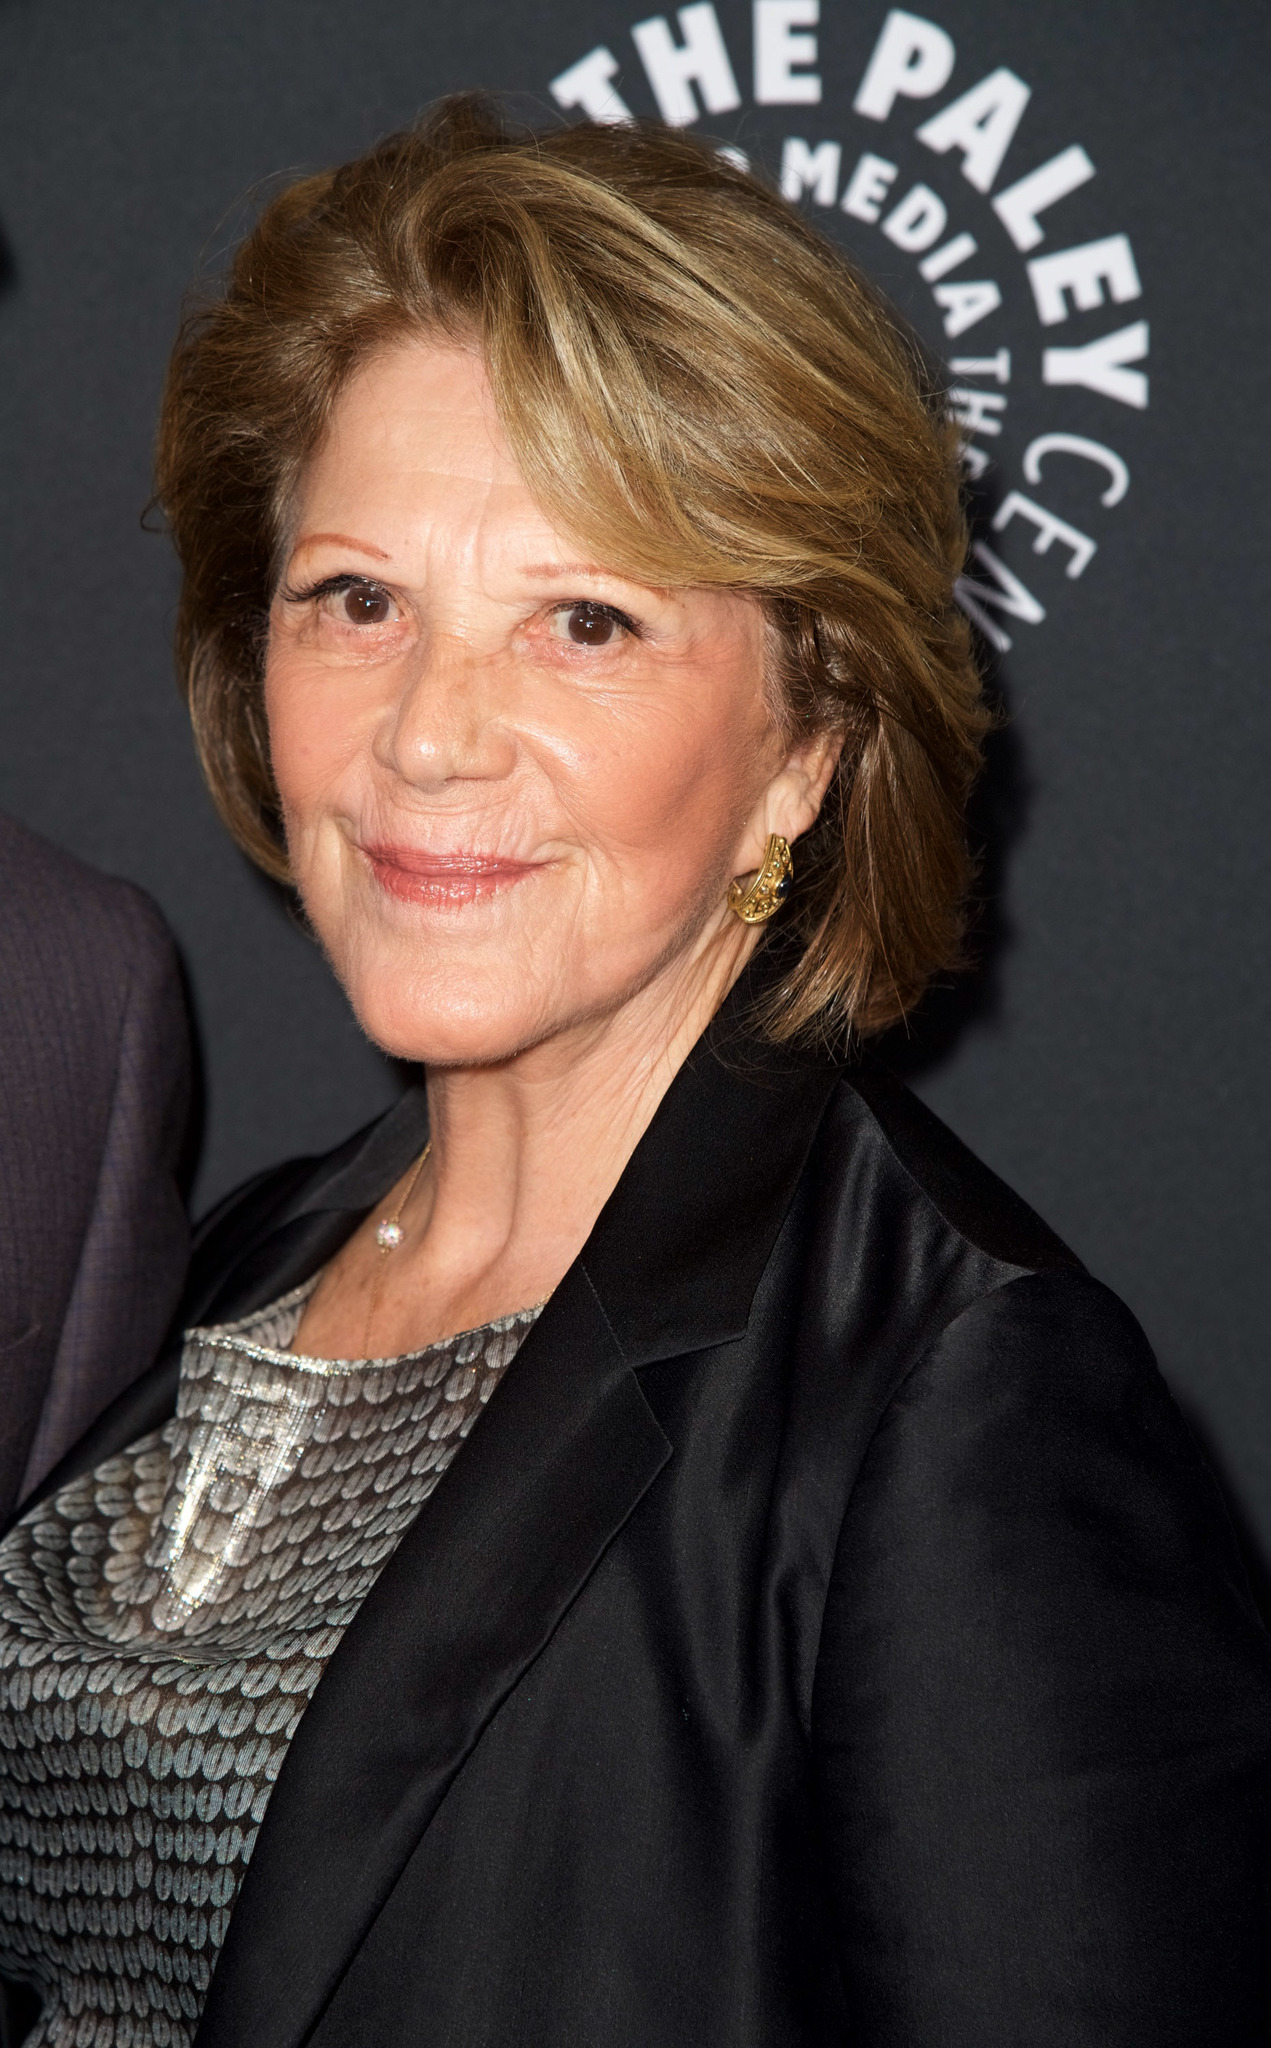 The 83-year old daughter of father David J. Lavin and mother Lucille Potter Linda Lavin in 2021 photo. Linda Lavin earned a  million dollar salary - leaving the net worth at  million in 2021